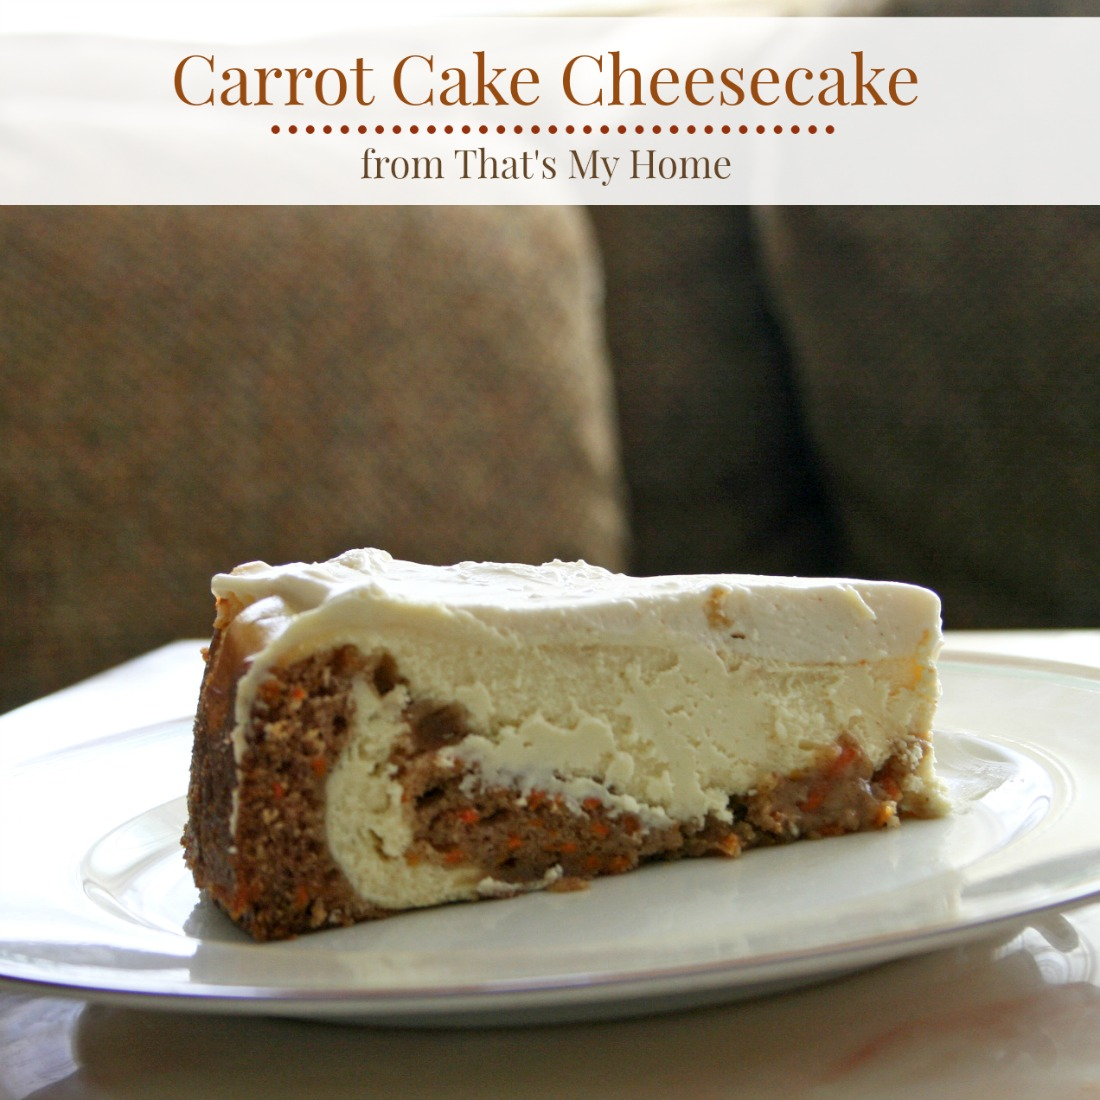 Carrot Cake Cheesecake from That's My Home